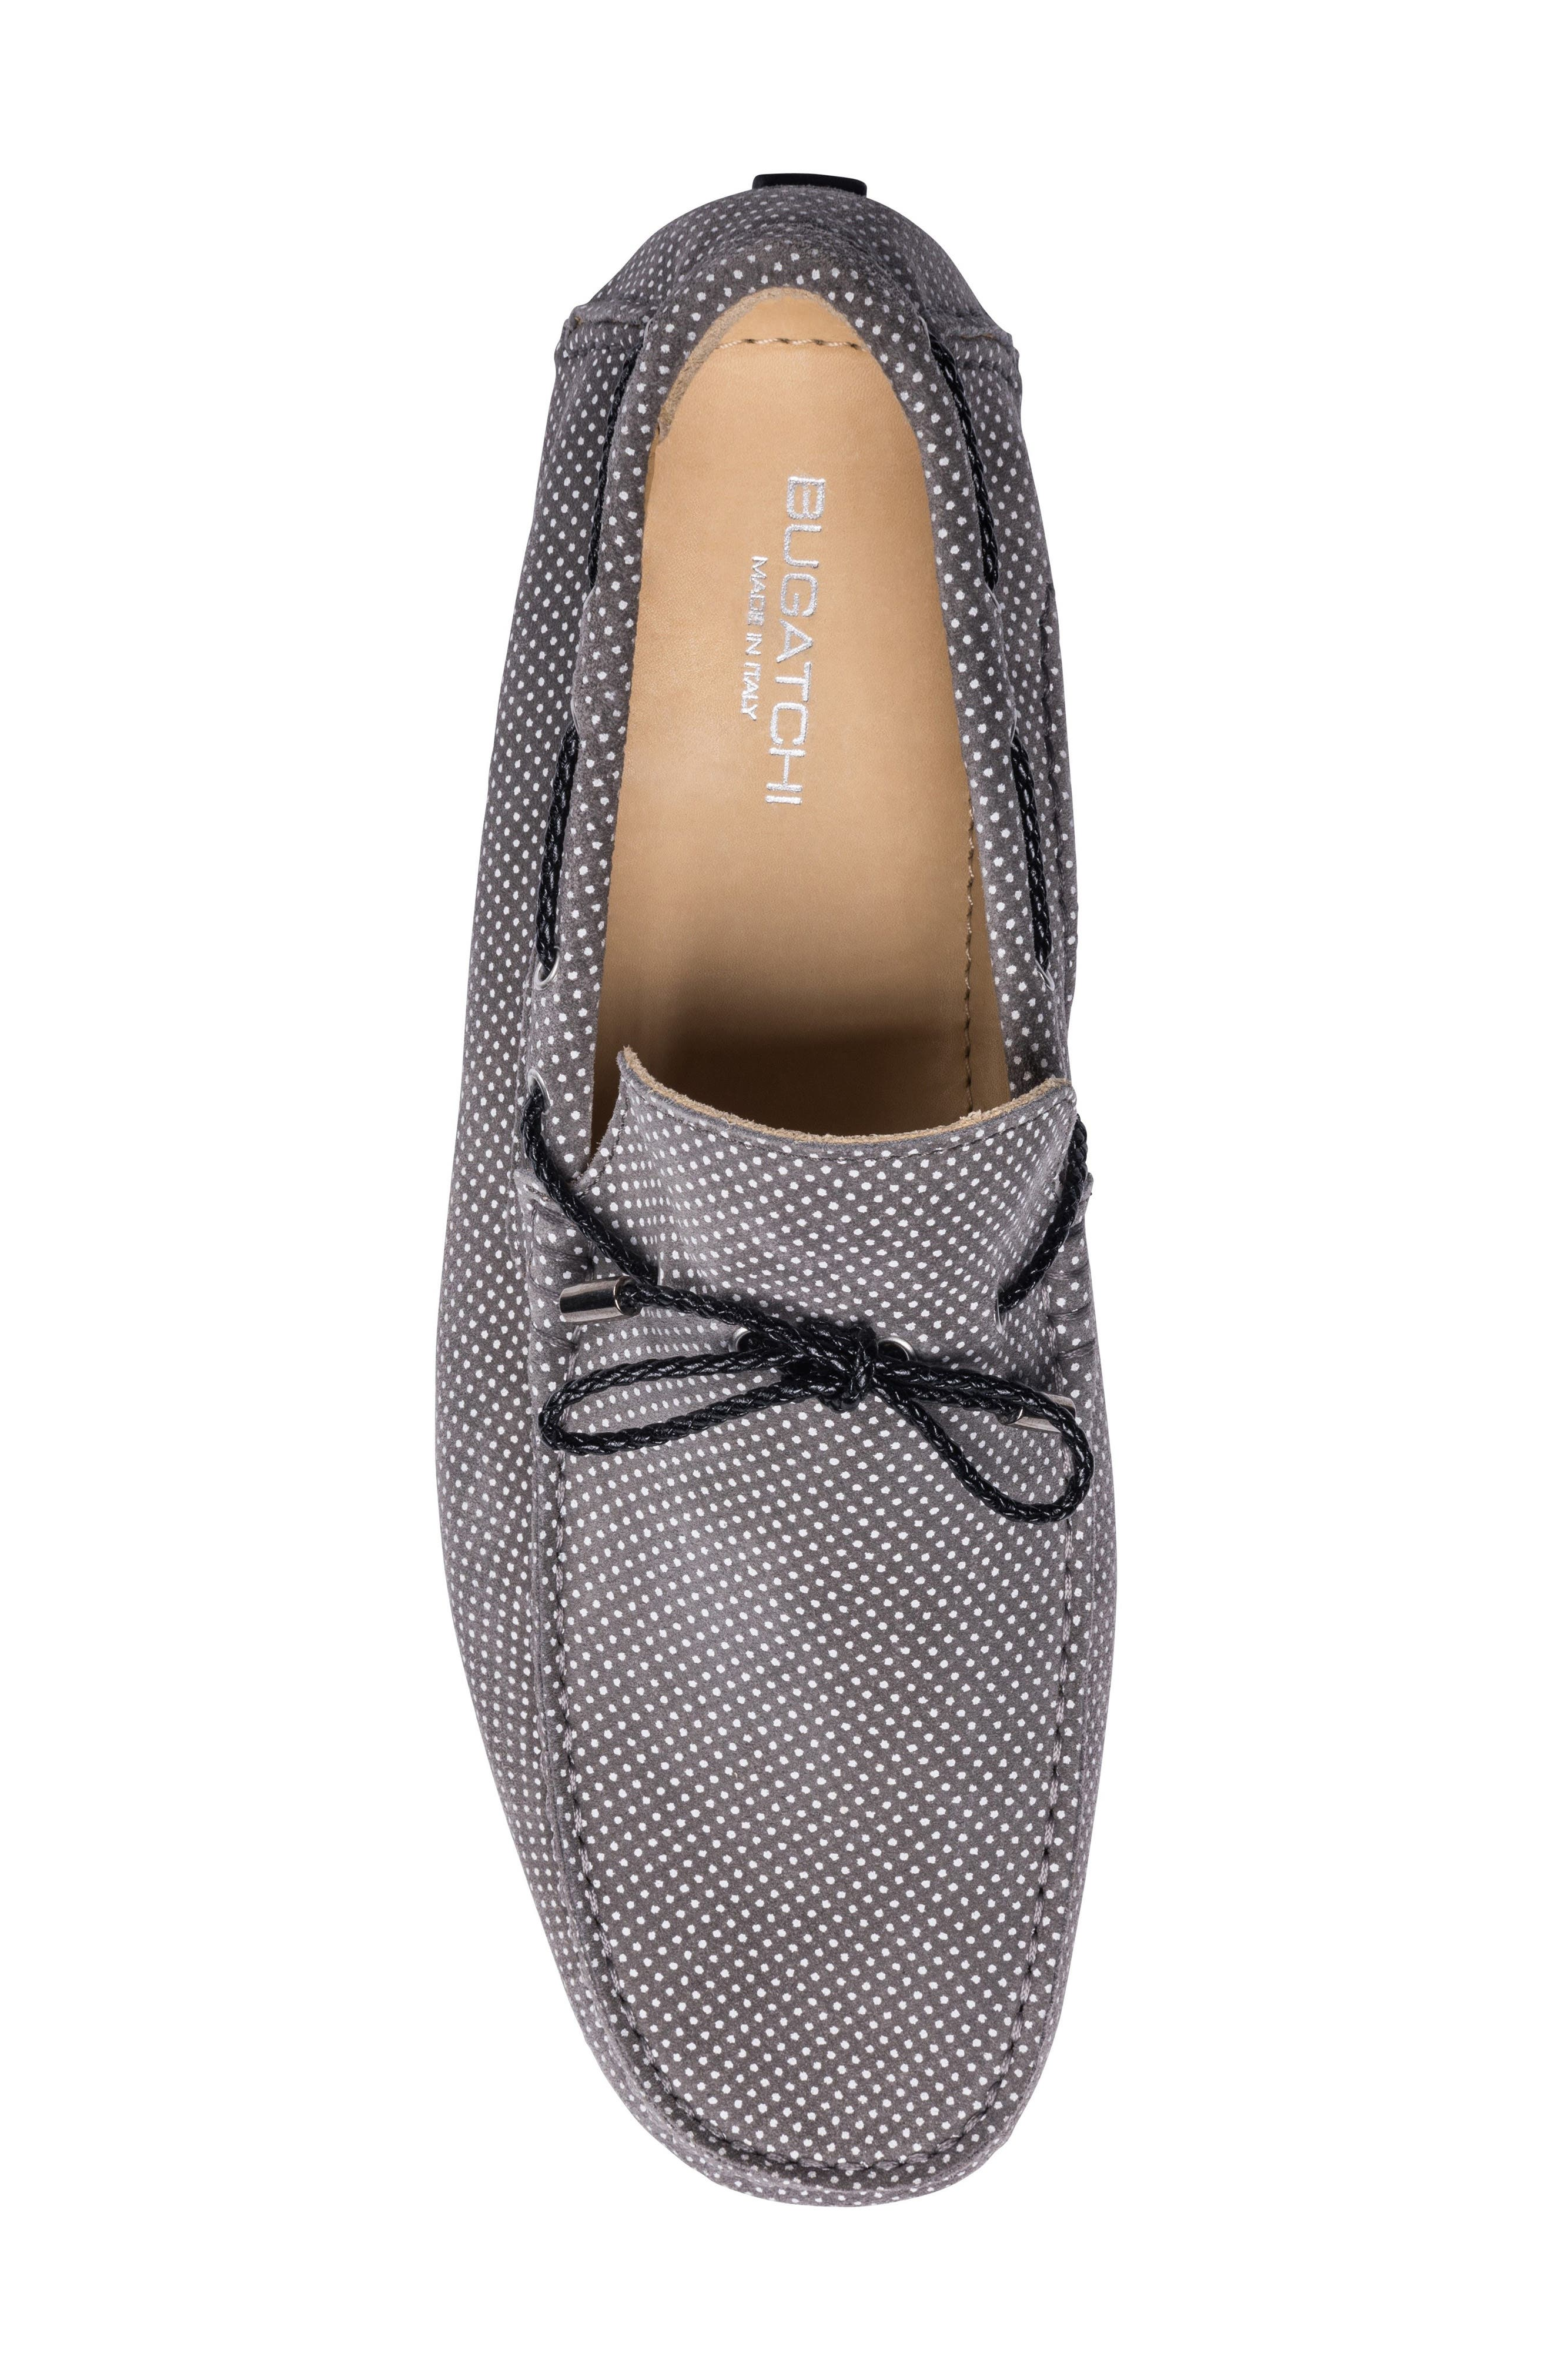 Sanremo Patterned Driving Loafer,                             Alternate thumbnail 5, color,                             GREY SUEDE